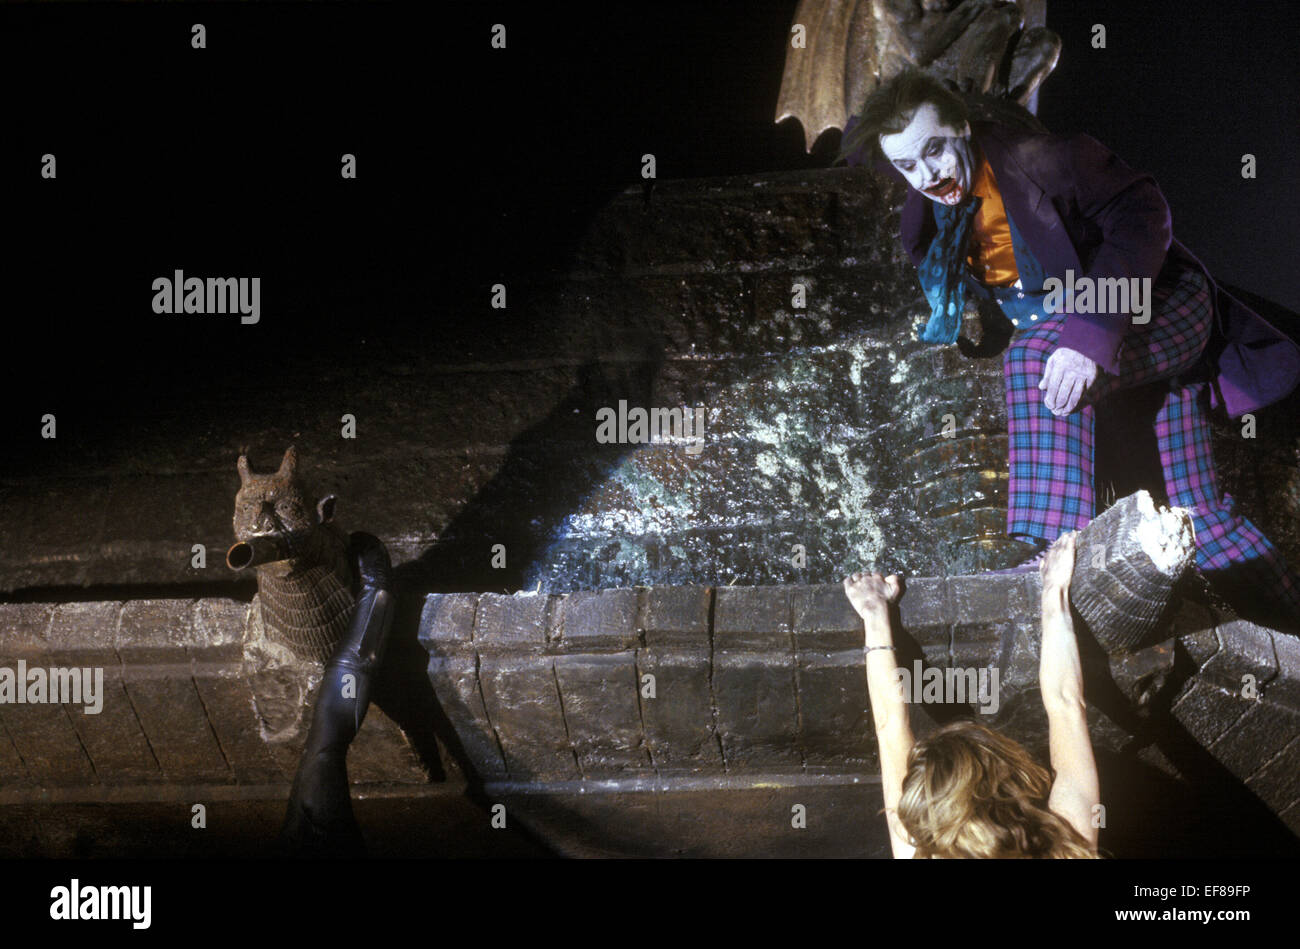 JACK NICHOLSON BATMAN (1989) Stock Photo